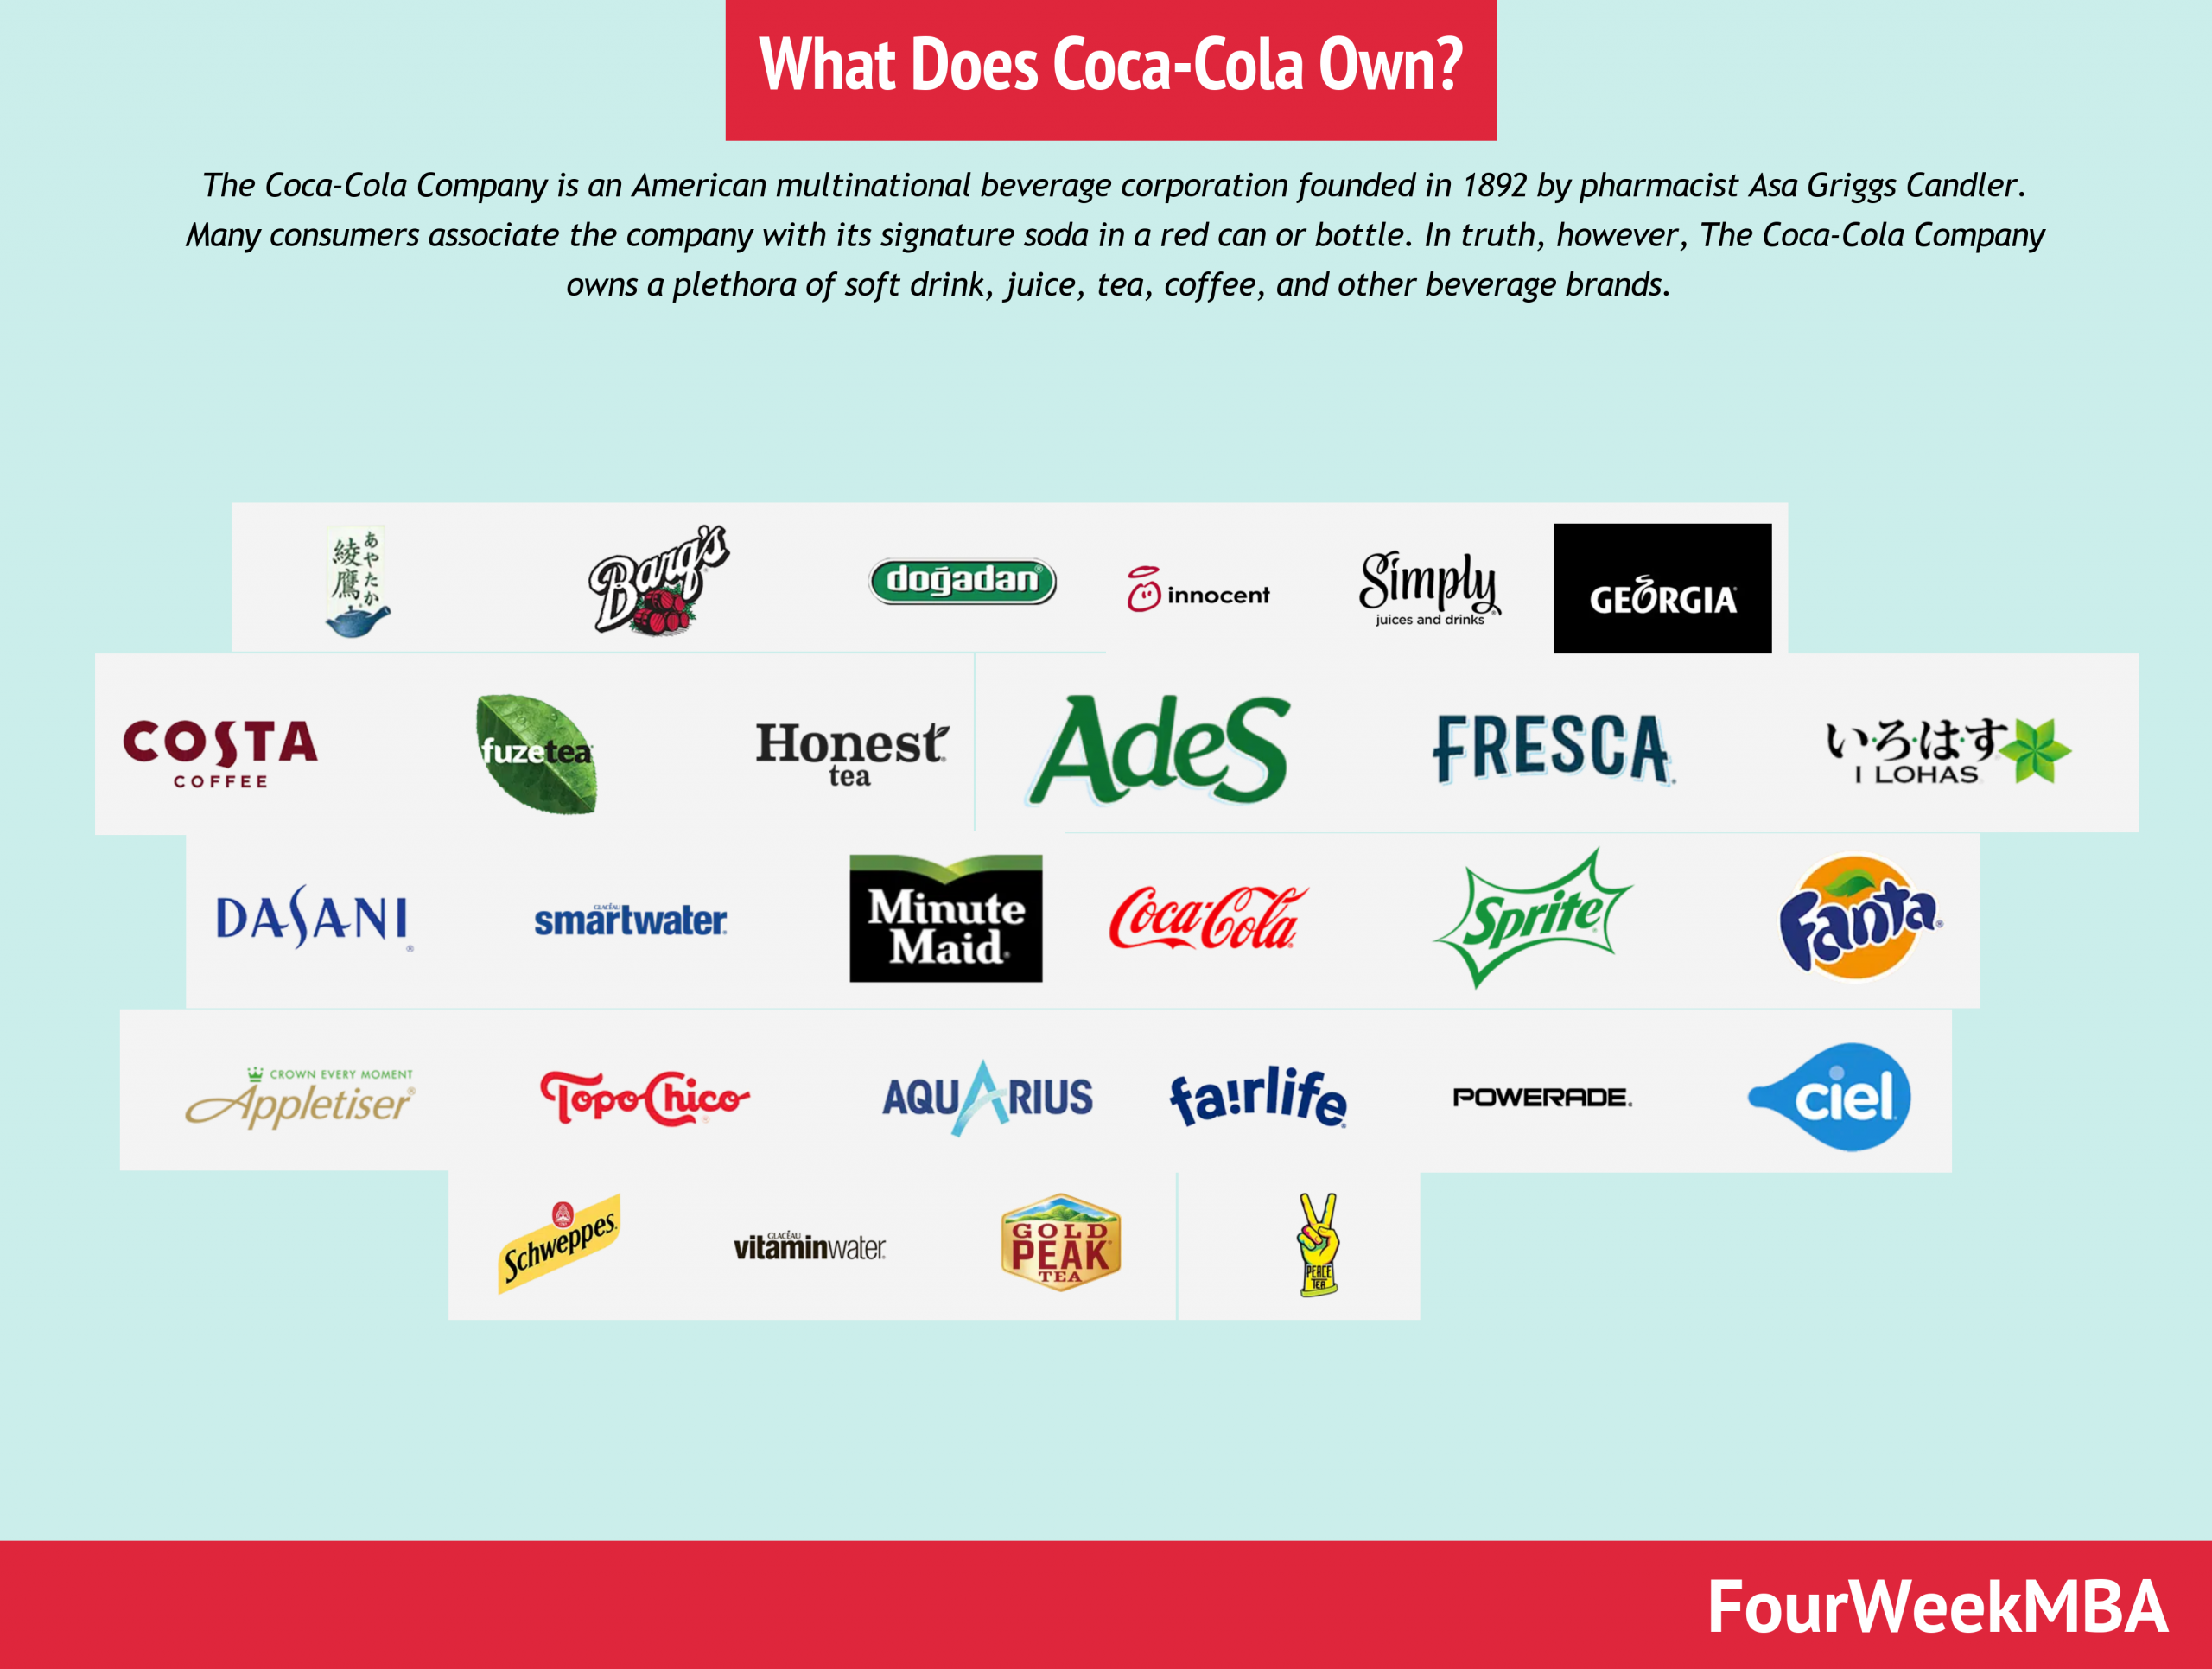 What Does Coca-Cola Own? Coca-Cola Companies In A Nutshell